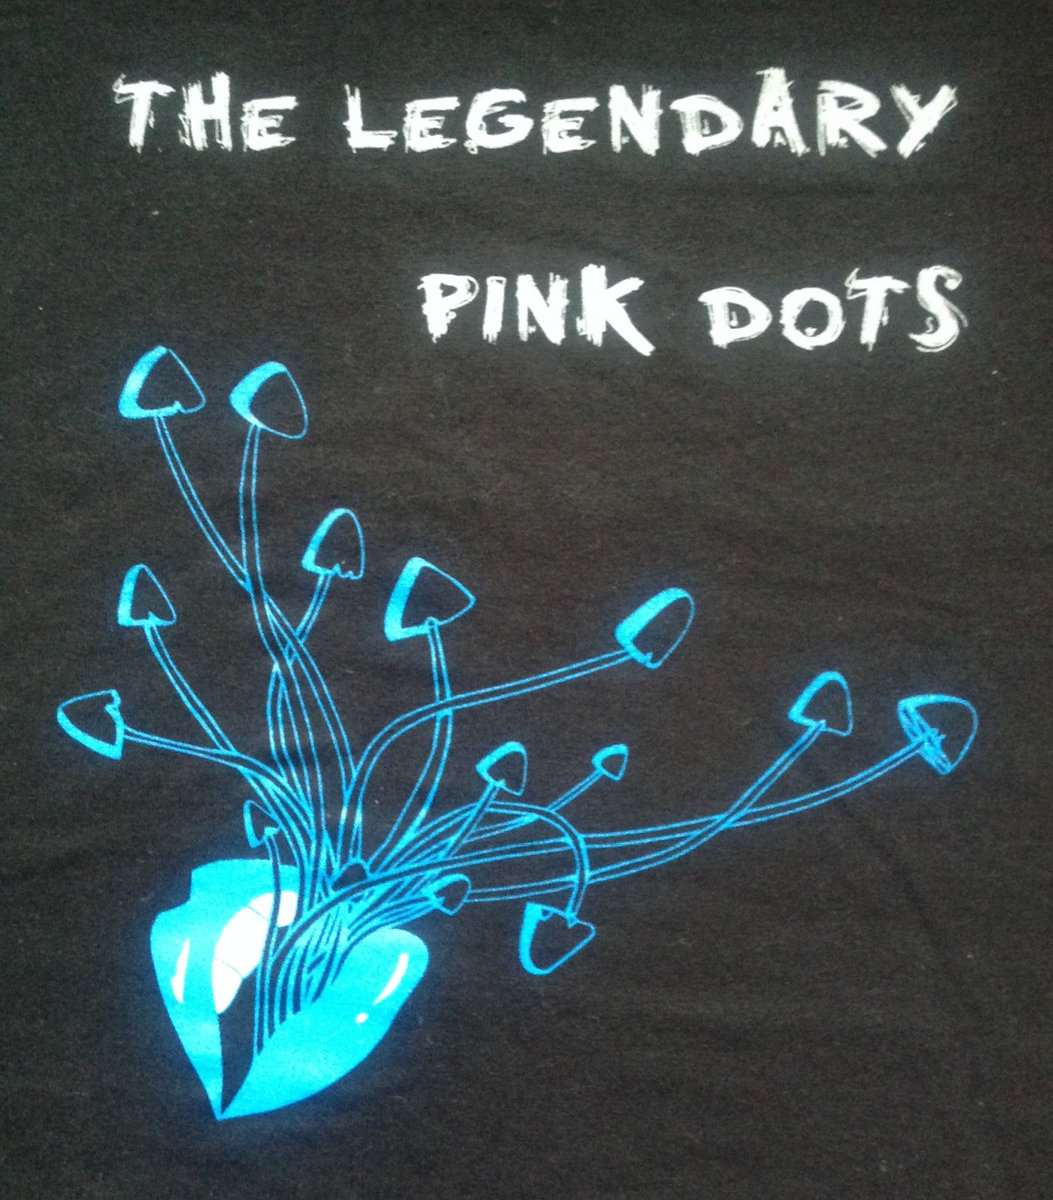 The Legendary Pink Dots - Greetings 9 + Premonition 11